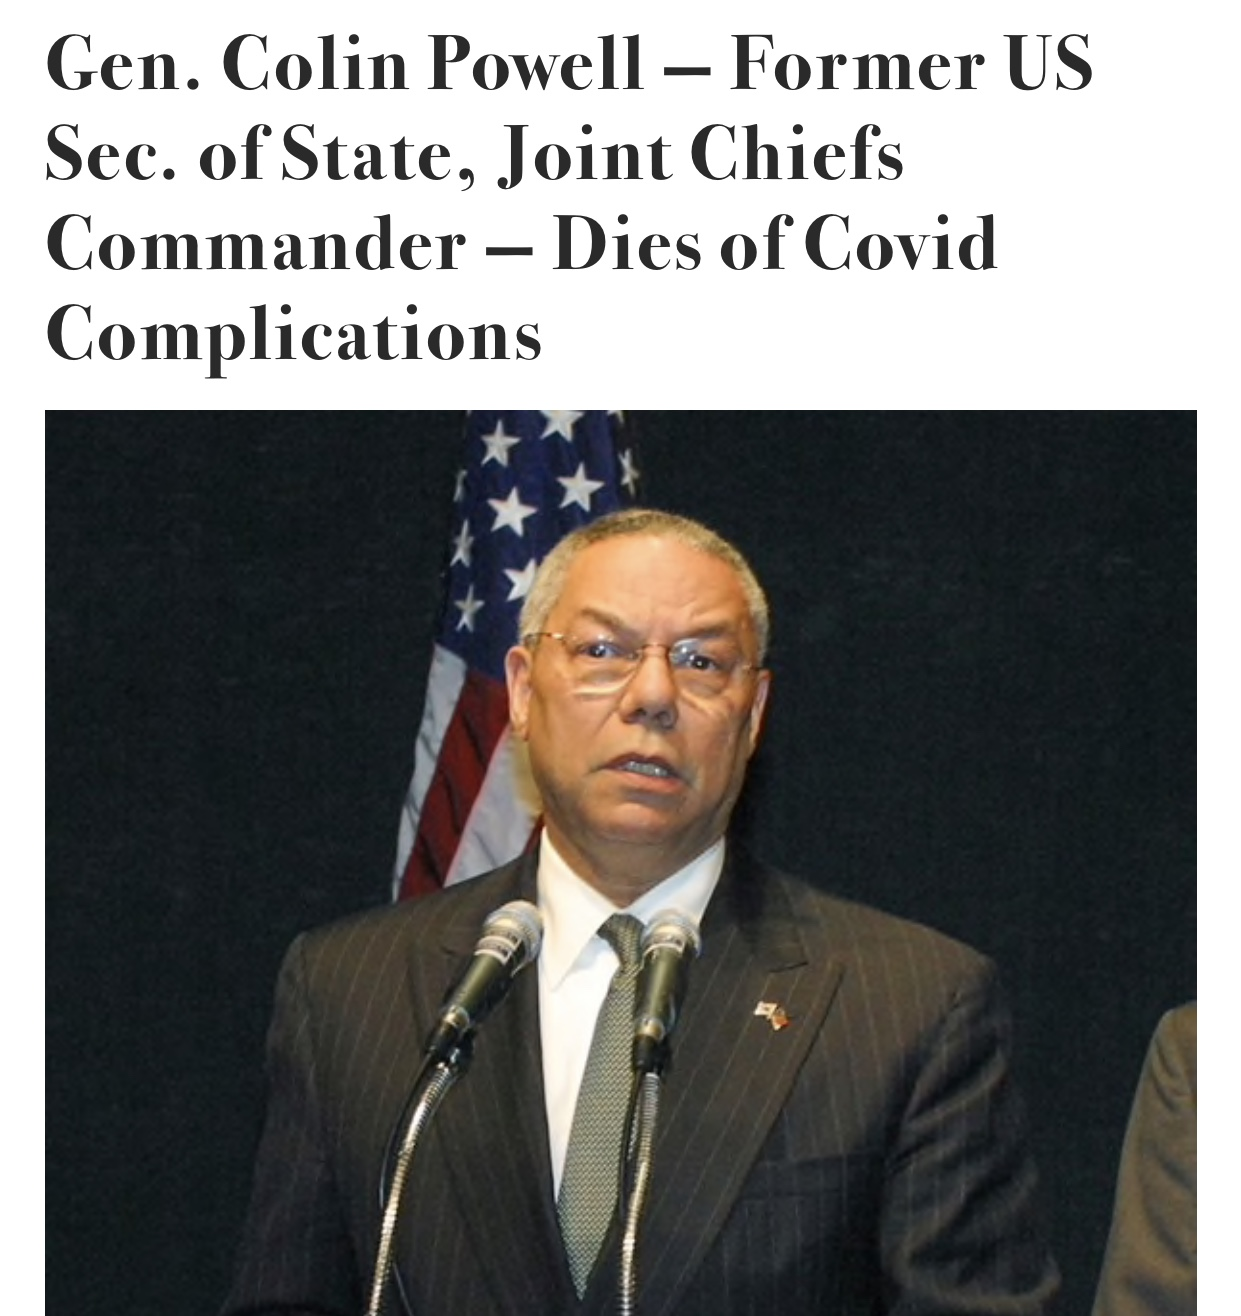 General Colin Powell Dies Despite being fully vaccinated against COVID-19, his family said, he died due to complication from the disease